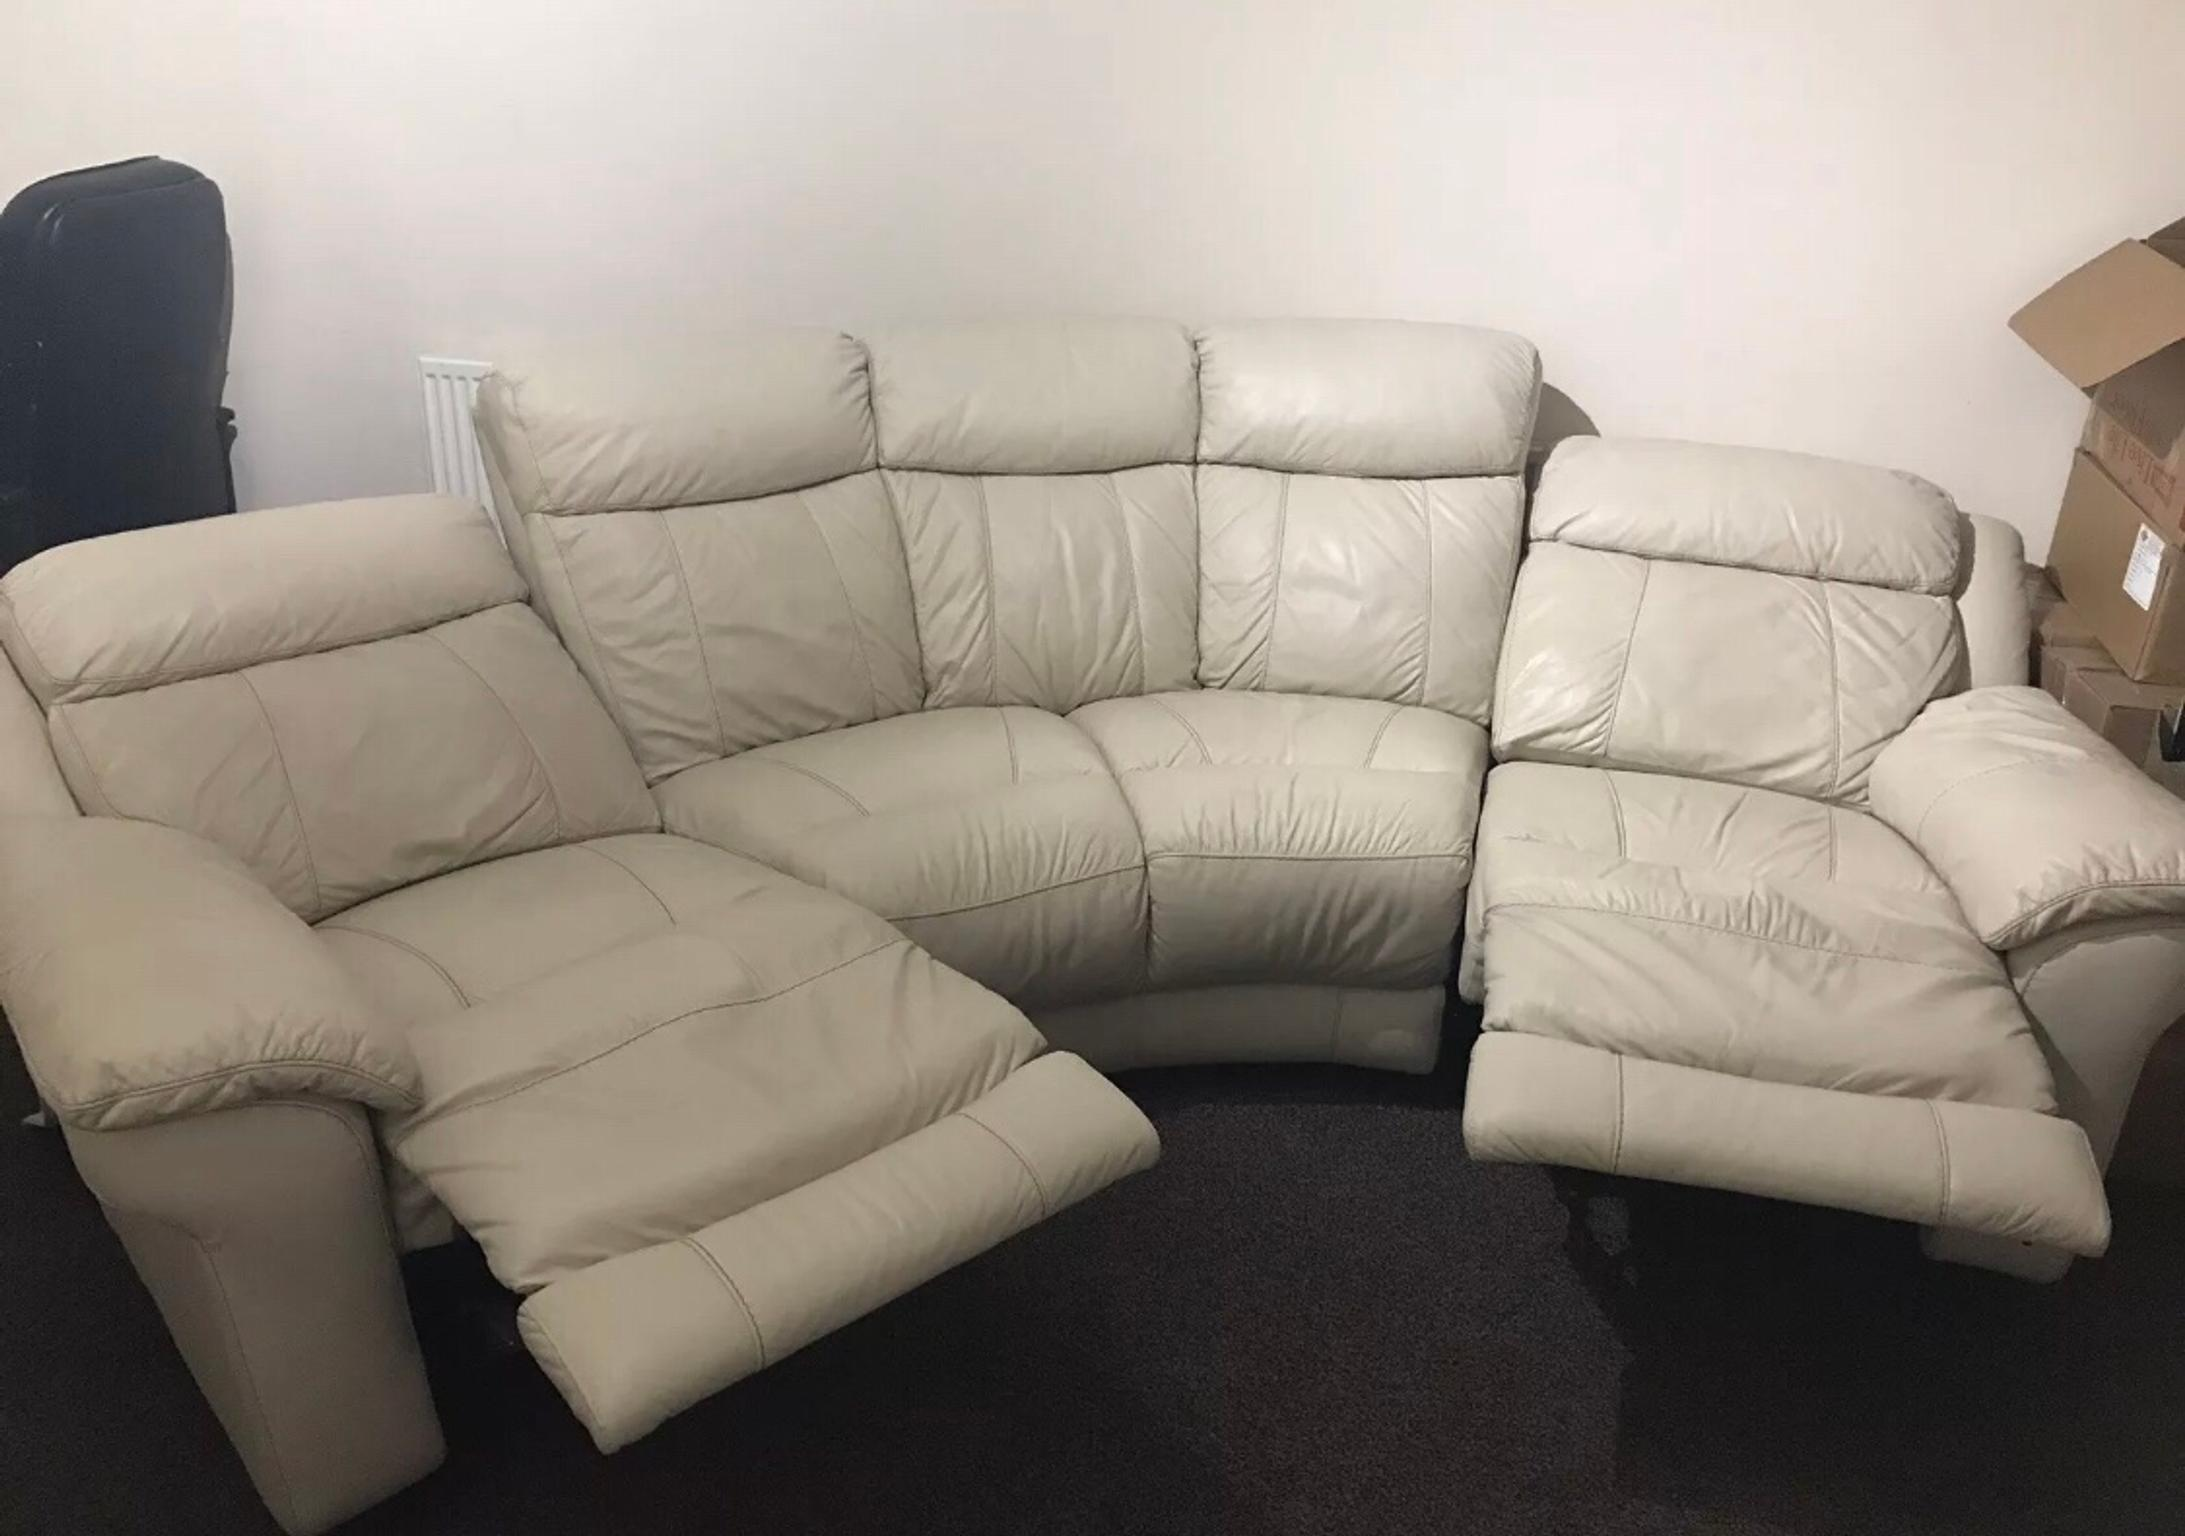 - DFS Cream Leather Curved Sofa And Chair In WR14 Hills Für £ 550,00